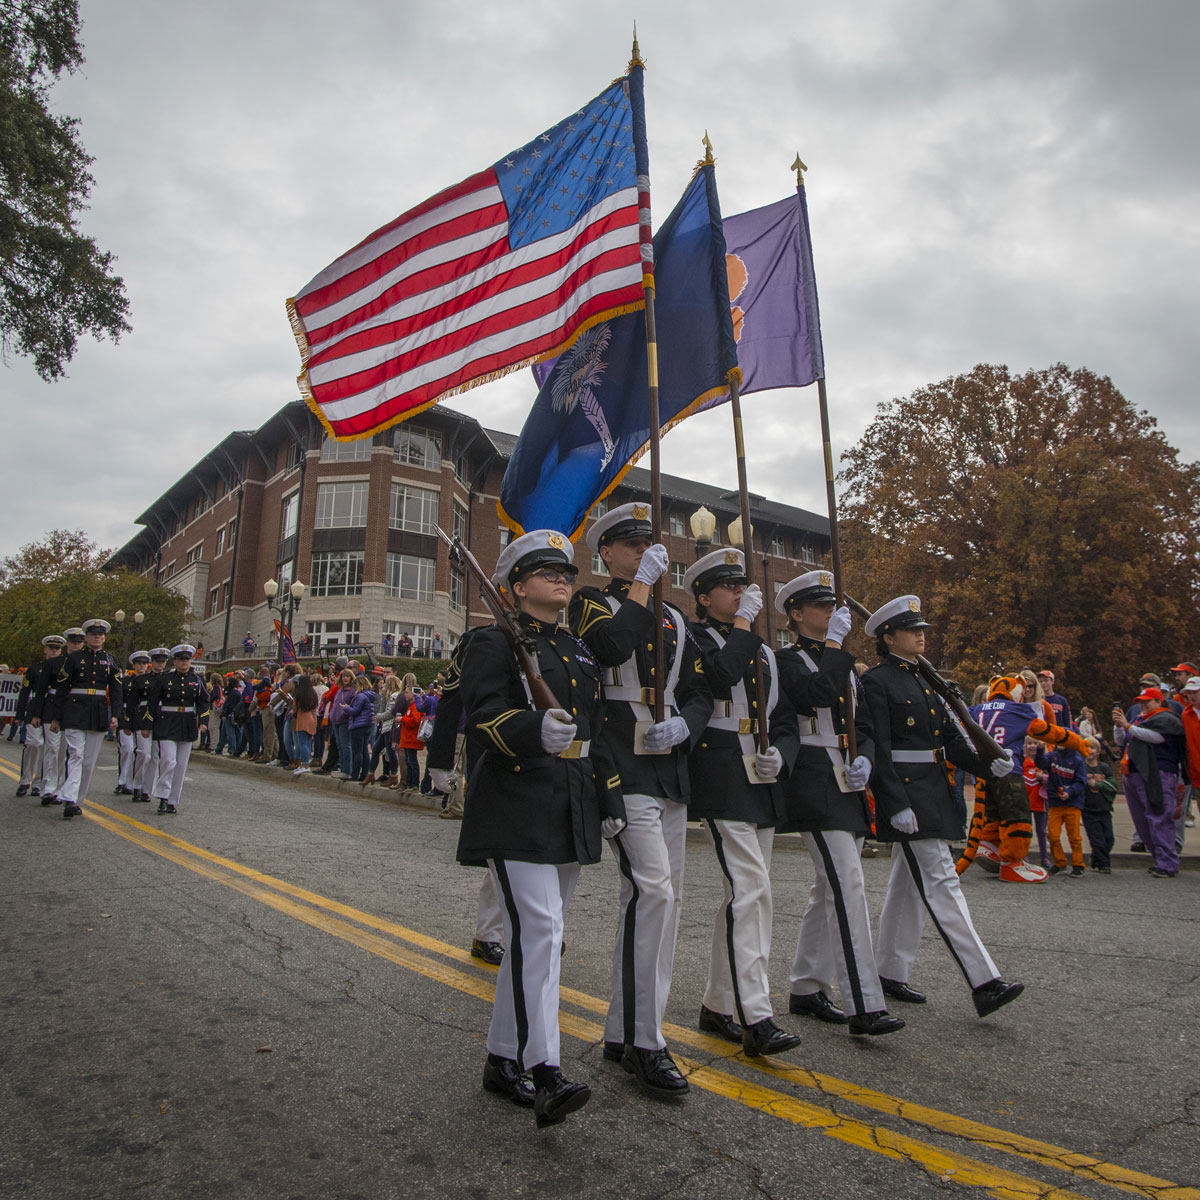 The Clemson University Pershing Rifles honor guard lead the parade into Memorial Stadium before the Tigers take on The Citadel Bulldogs in the 2017 Military Appreciation Game.